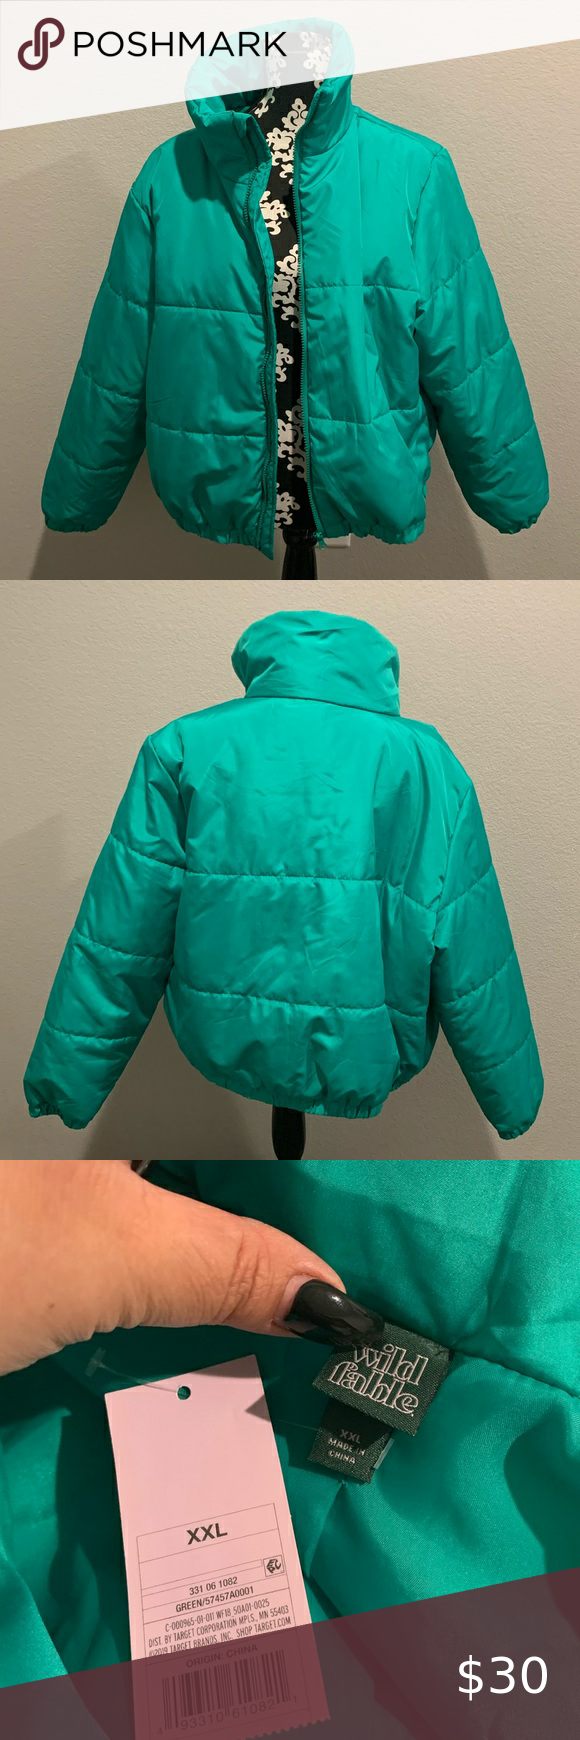 Wild Fable Trap Puffer Jacket Nwt Brand New Never Worn Wild Fable Jackets Coats Puffers Puffer Jacket Women Yellow Puffer Jacket Red Puffer Jacket [ 1740 x 580 Pixel ]